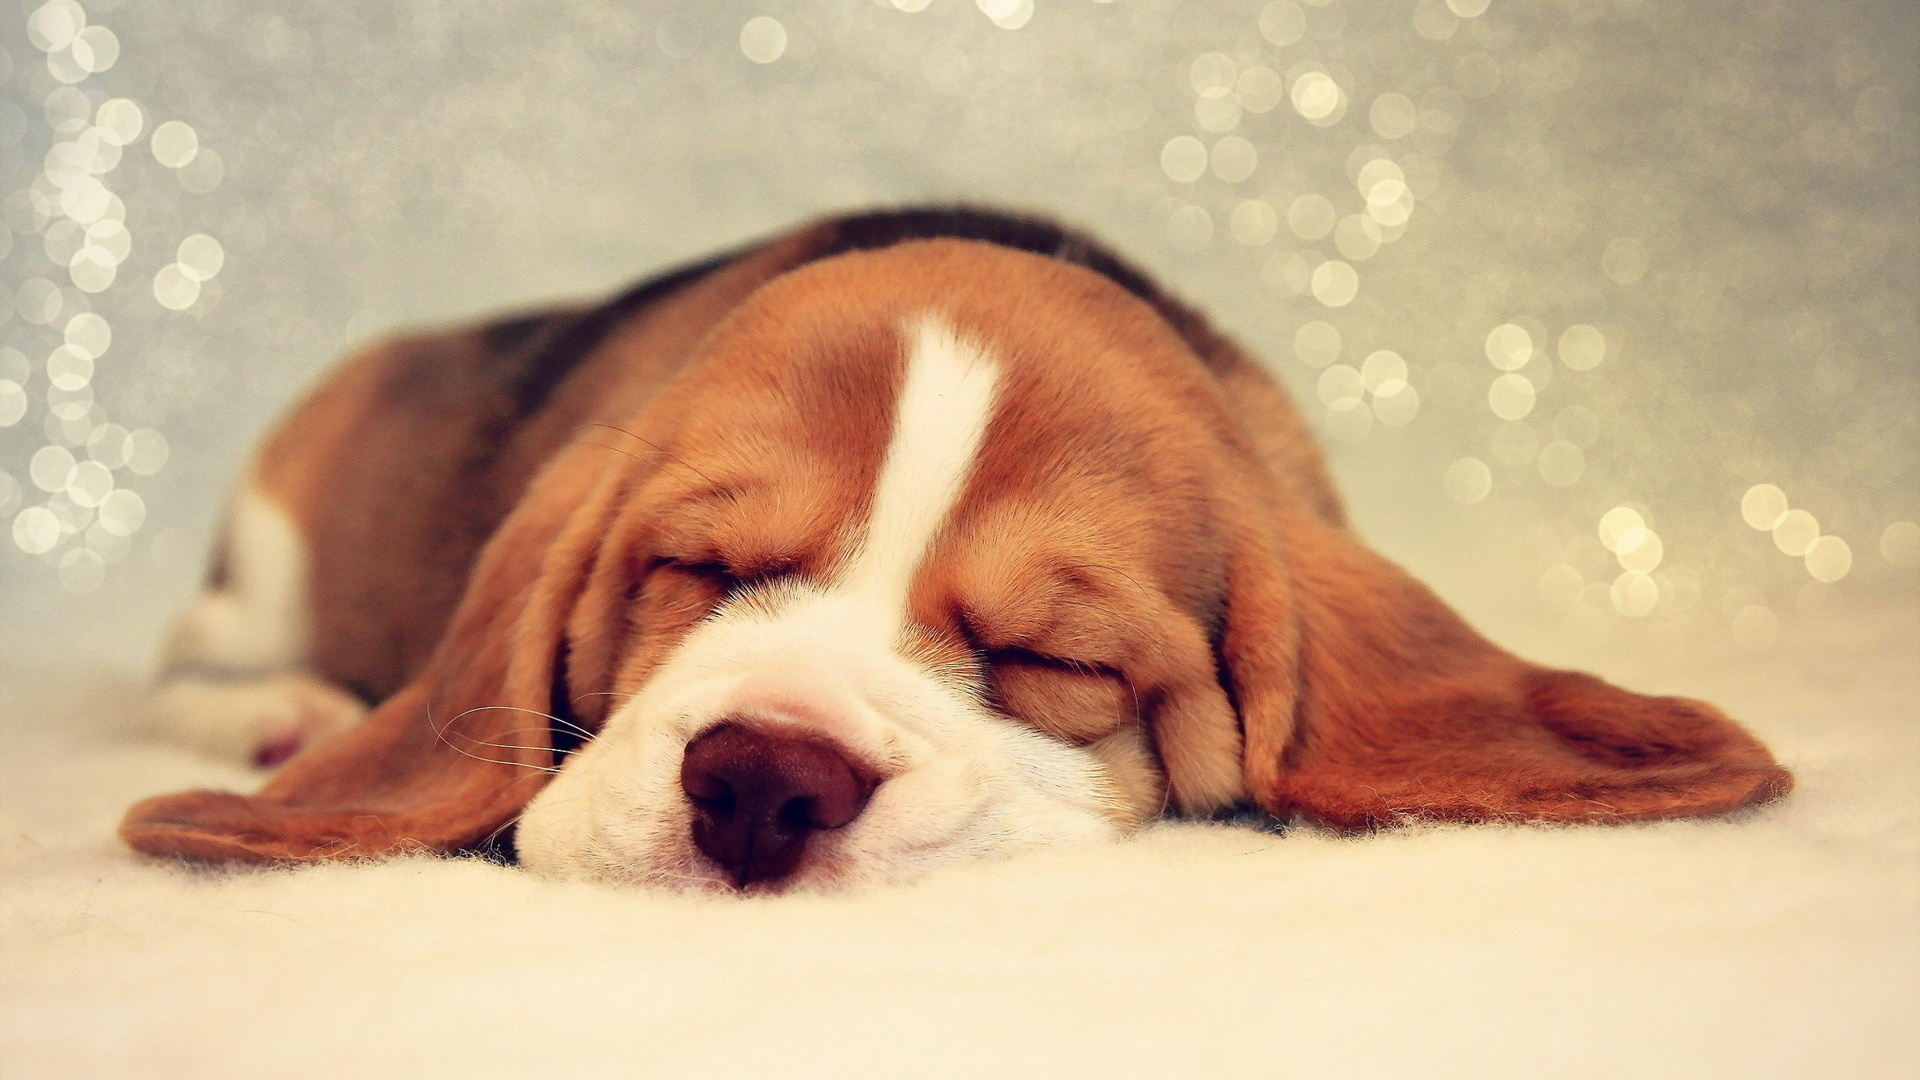 Animals-Dogs-A-Basset-Hound-is-looking-tenth-dream-049546-